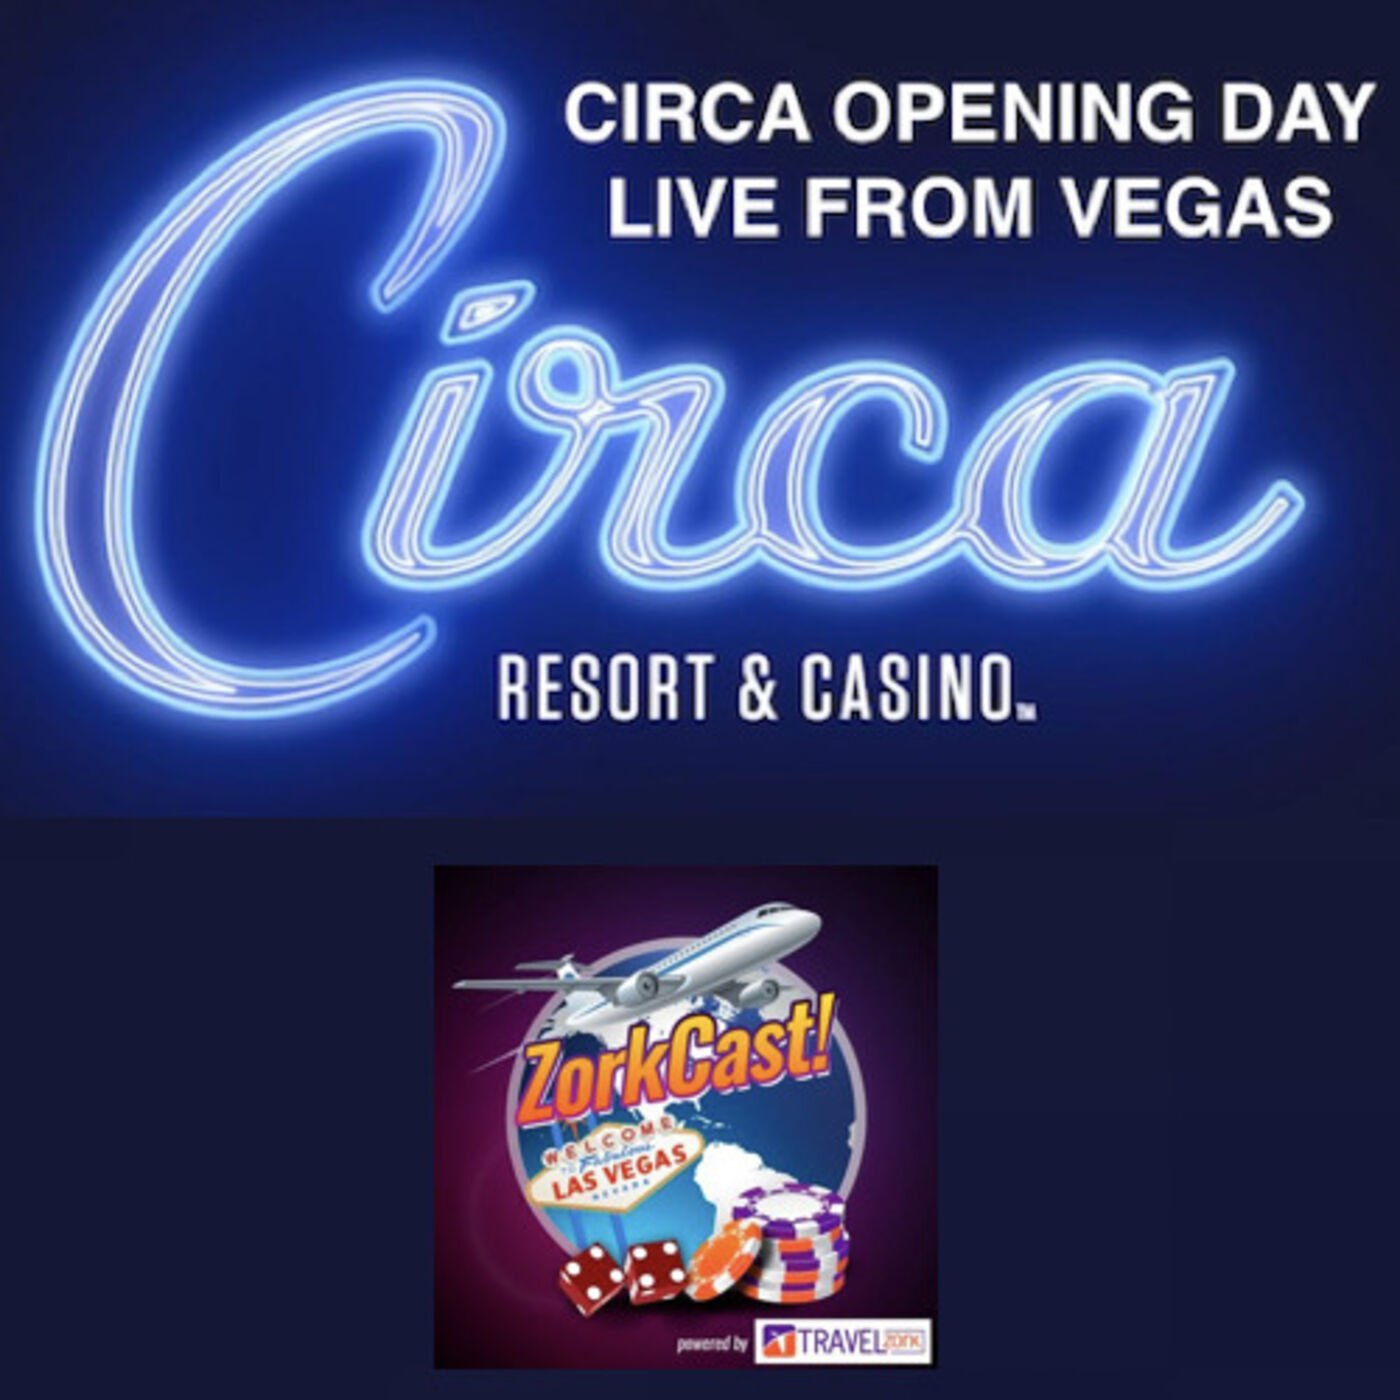 Episode 102 The Most Exciting Thing about Circa Las Vegas with MeltzVegas